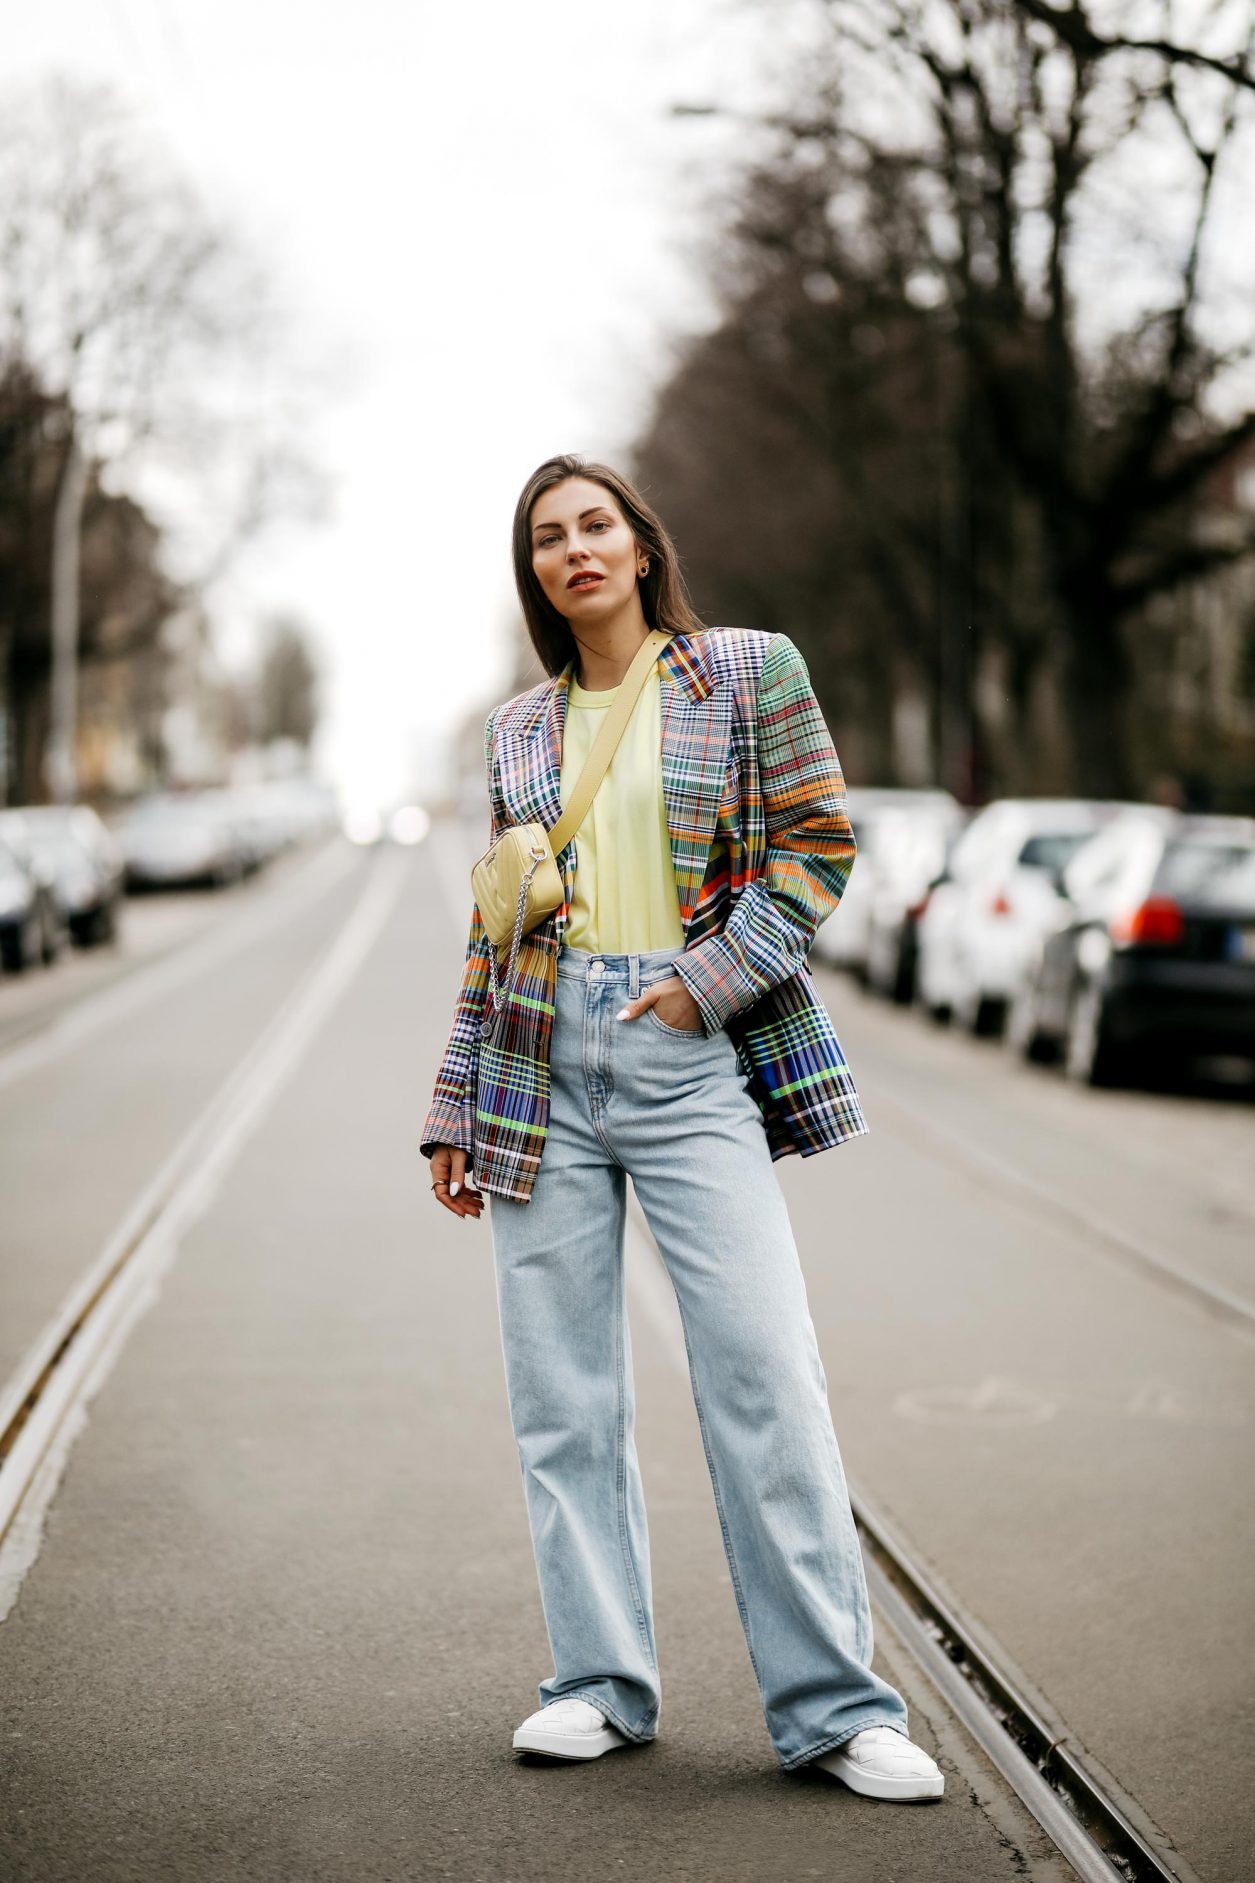 Spring Summer 2021 Streetstyle outfit by fashion blogger from Berlin, Germany | Styling ideas for multicolored checked Proenza Schouler blazer with neon yellow Frankie Shop t-shirt, crossbody yellow WEAT bag, loose fit light blue Levi's jeans, white sneaker loafer from Copenhagen Studios #berlinfashionblogger #ss21 #streetstyle #stylinginspo #ootd